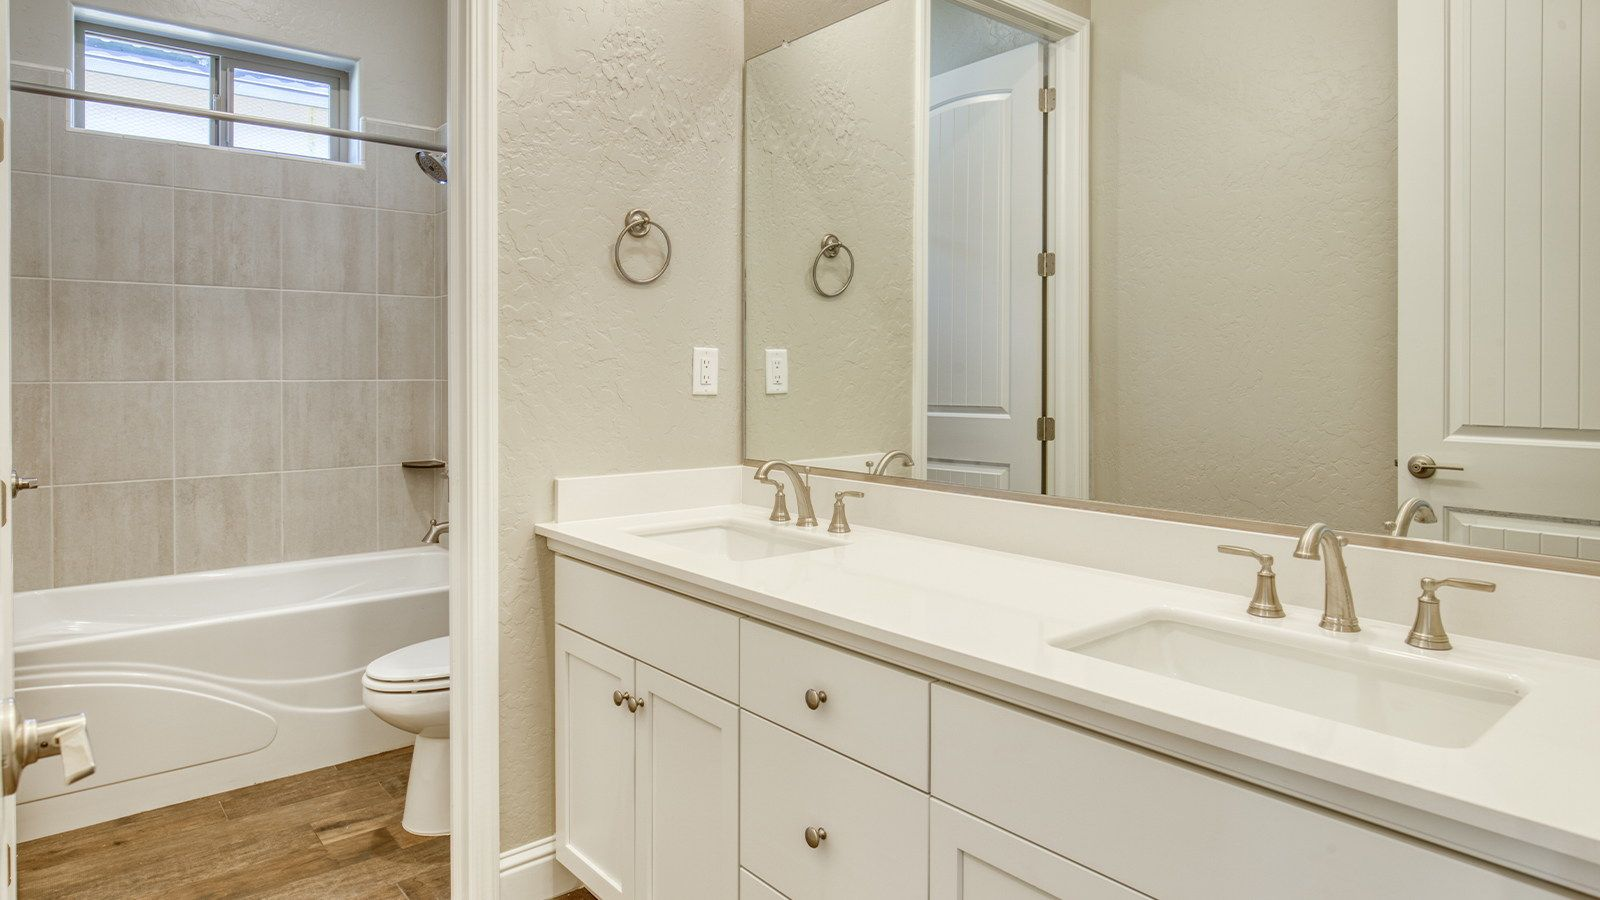 Bathroom featured in the Avery By Granville Homes  in Fresno, CA